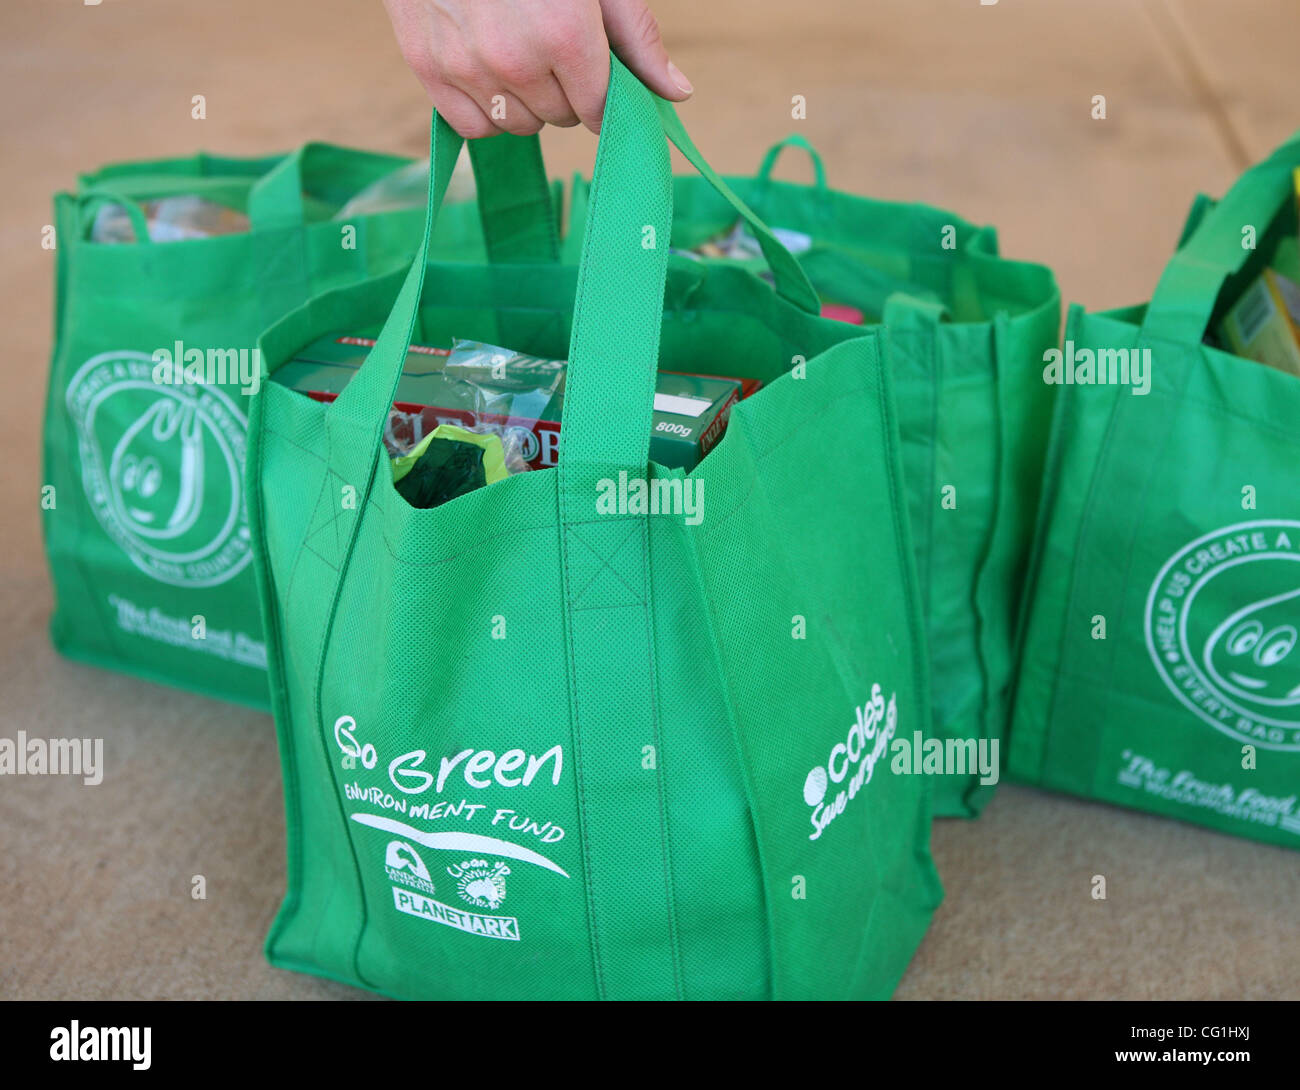 Re Usable Shopping Bags Stock Photos & Re Usable Shopping Bags ...